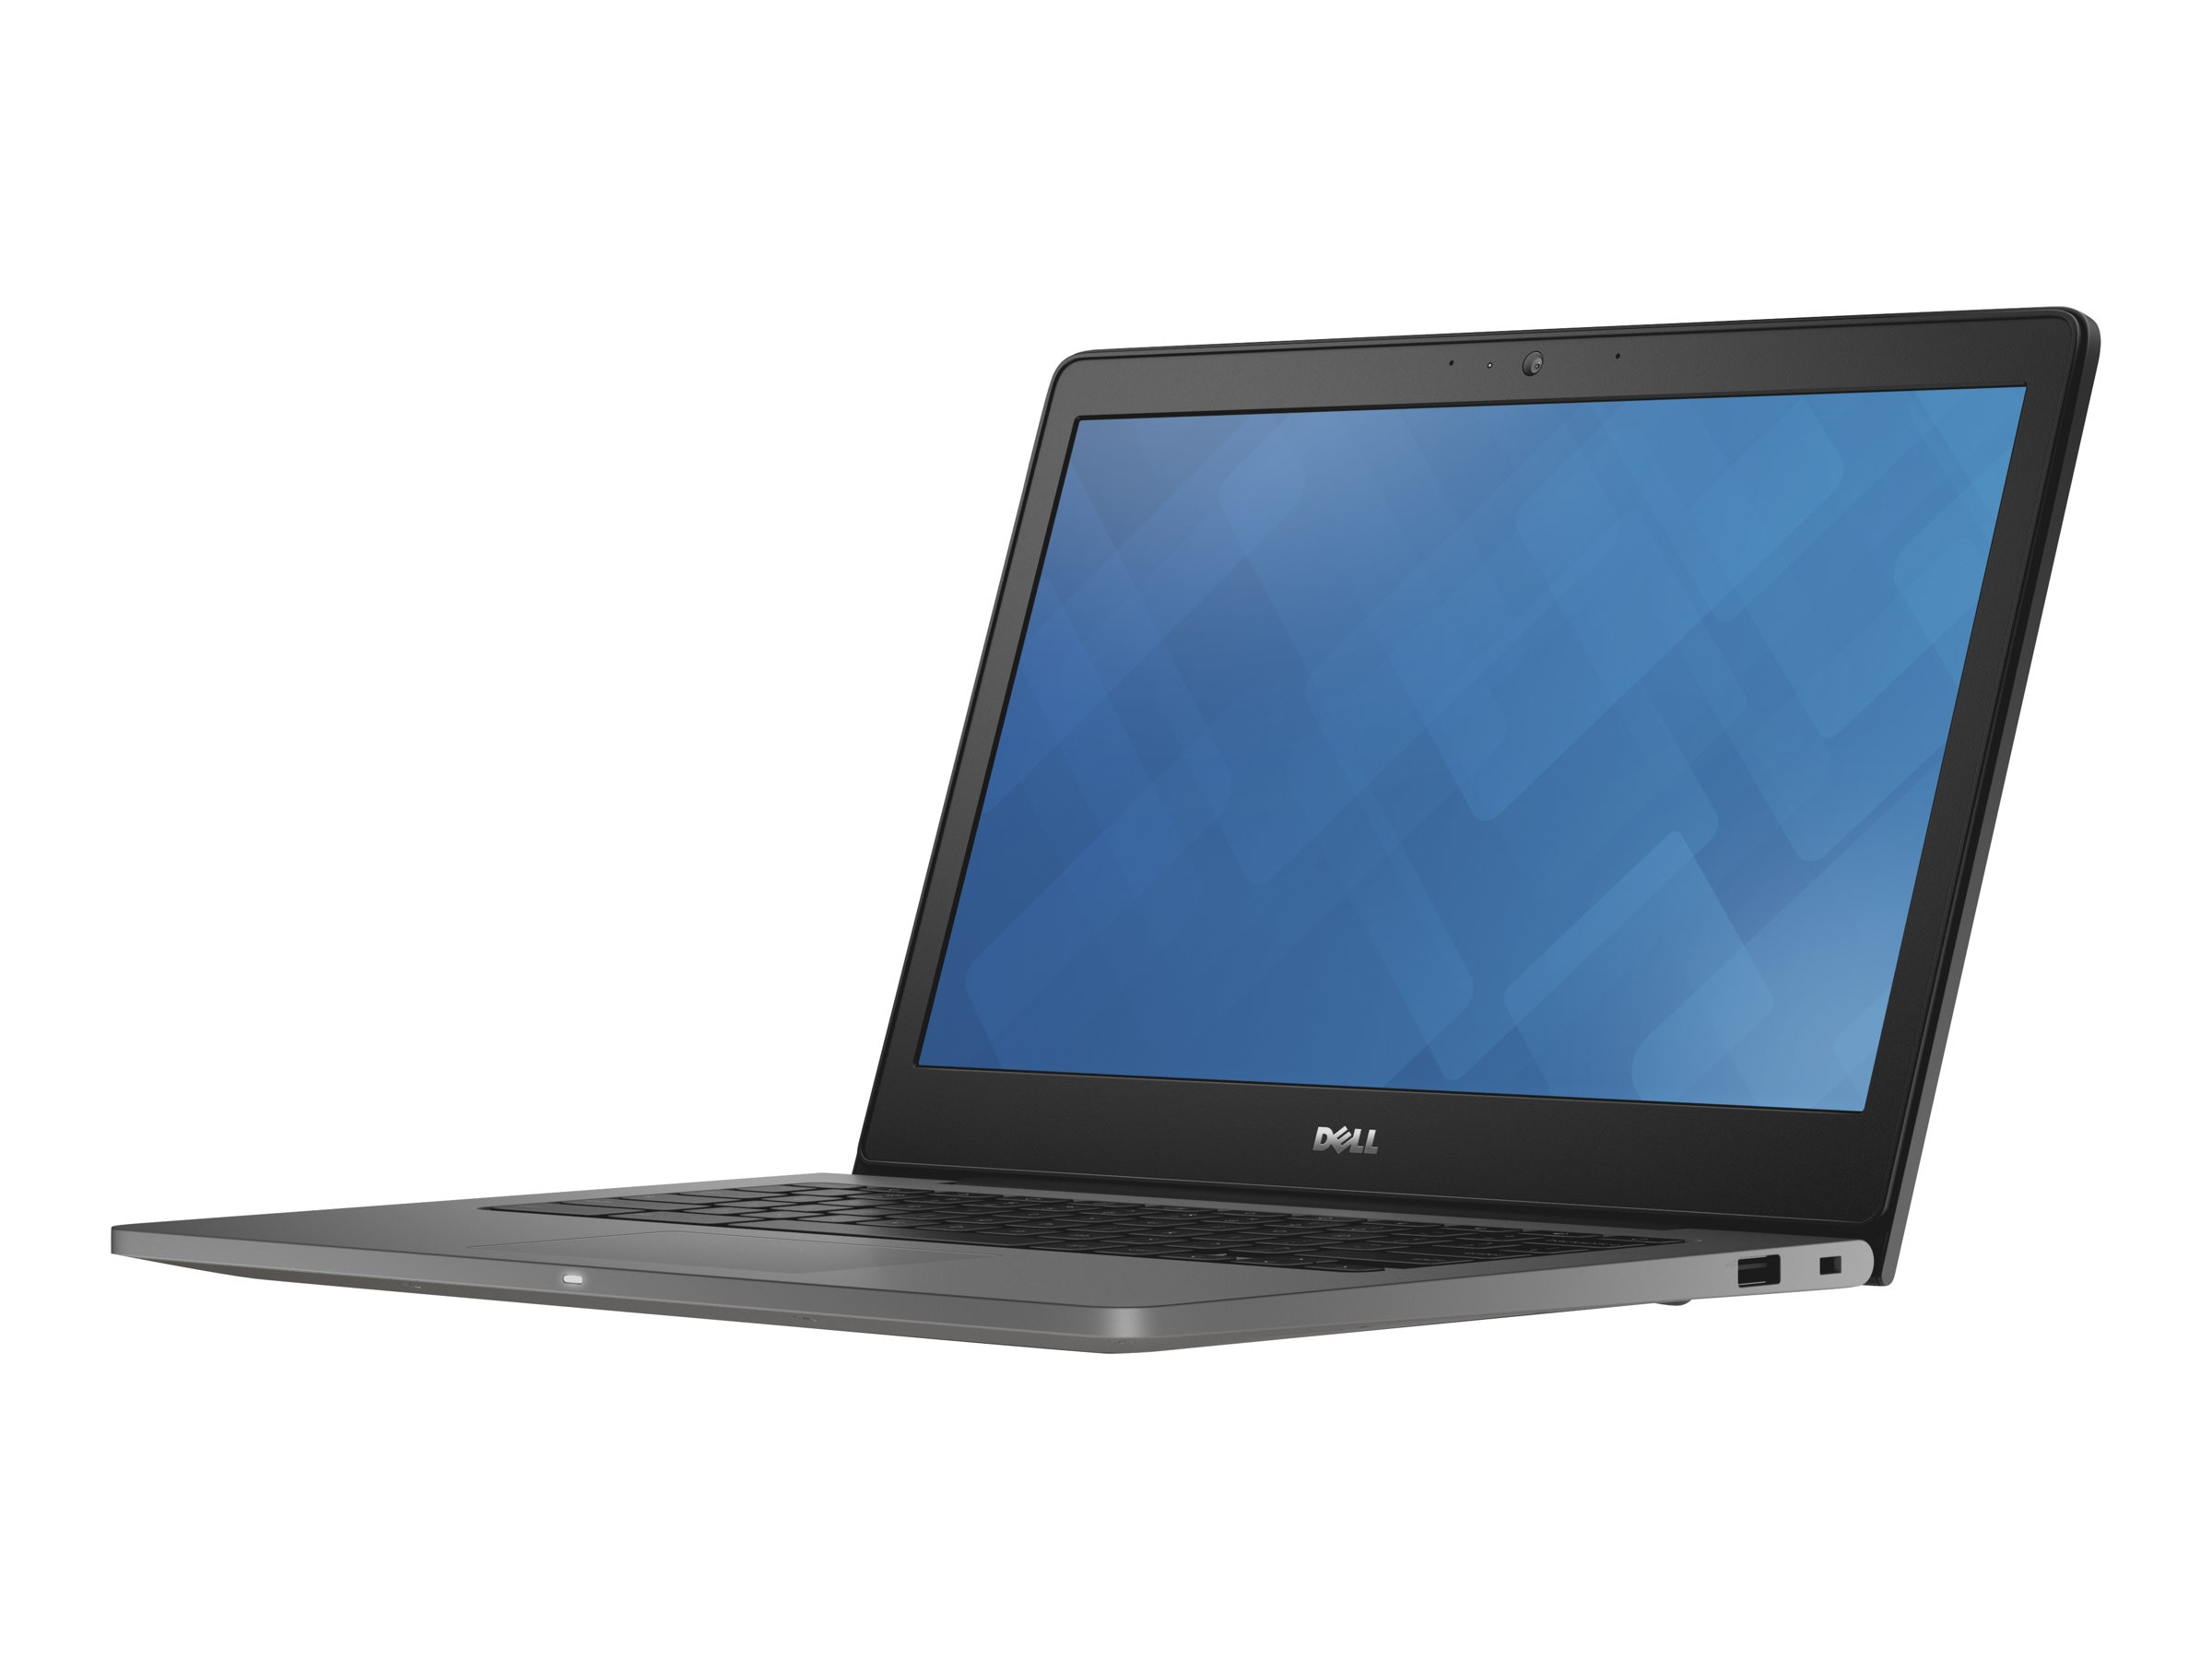 Dell Chromebook 13 Celeron 3215U 1.7GHz 4GB 16GB ac BT 6C 13.3 FHD Chrome OS